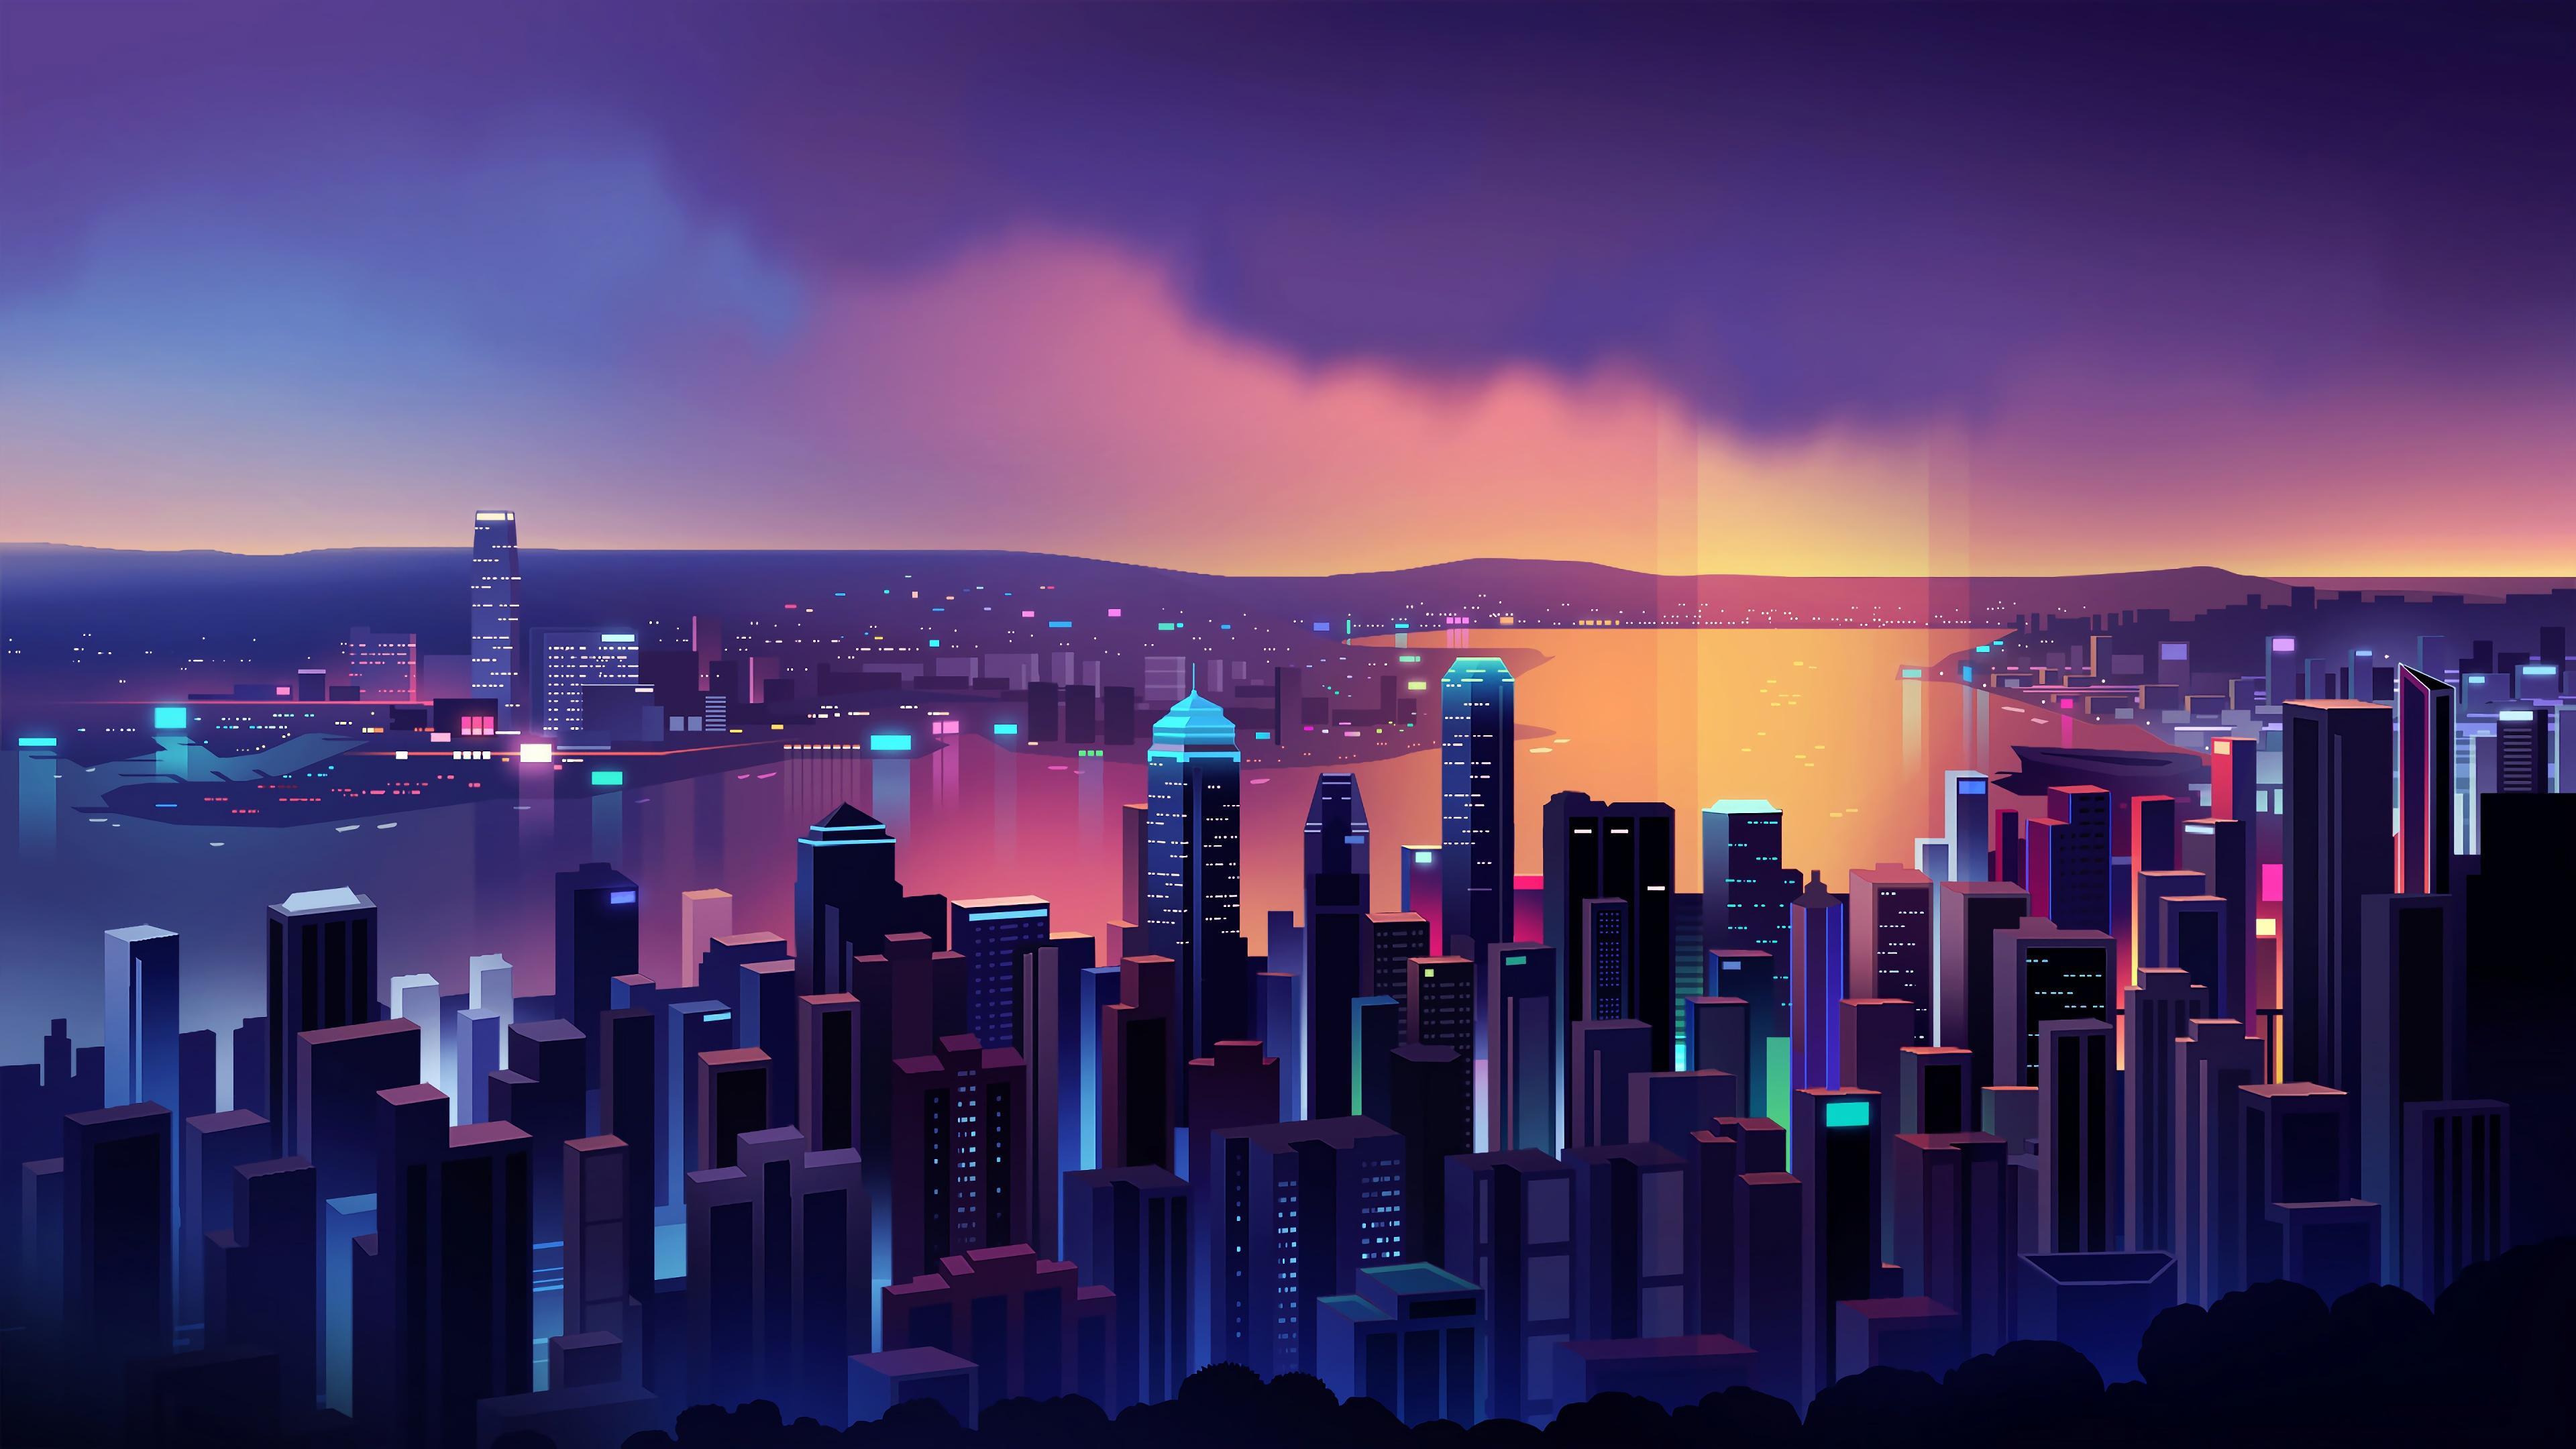 Anime Neon City Wallpapers - Wallpaper Cave